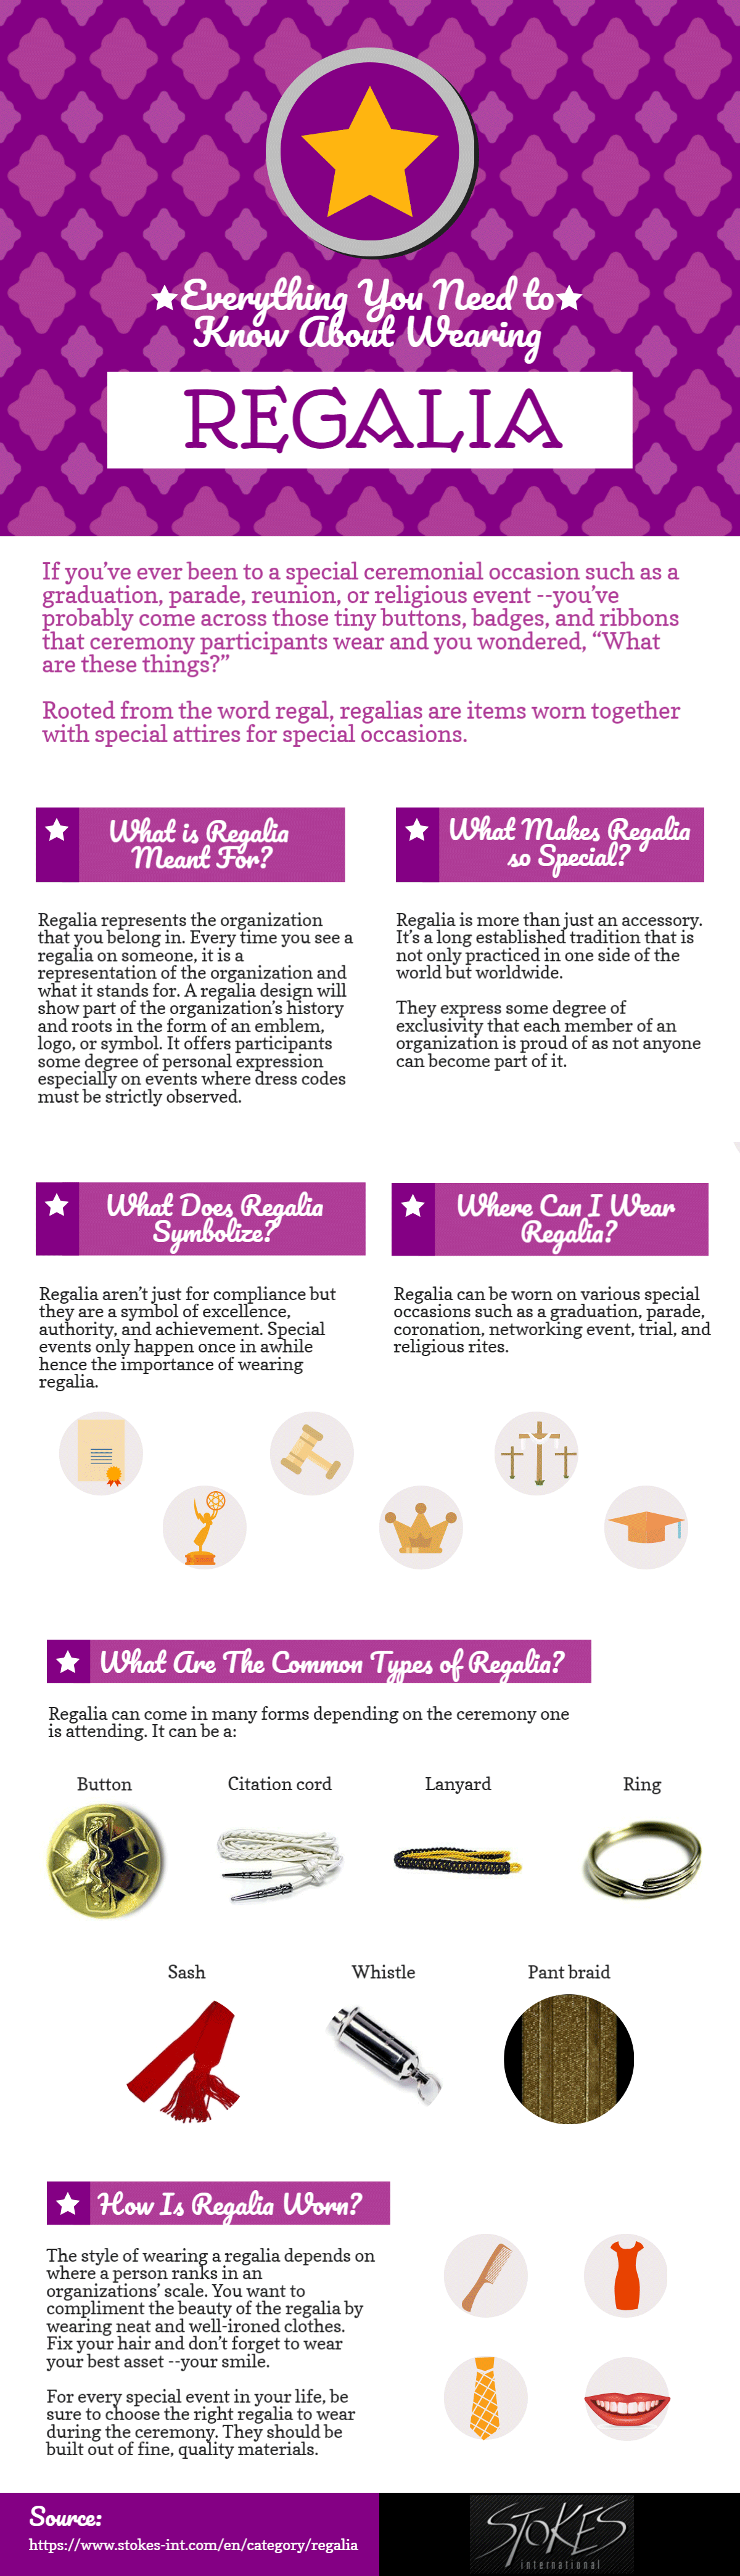 Everything_You_Need_to_Know_About_Wearing_Regalia_infographic